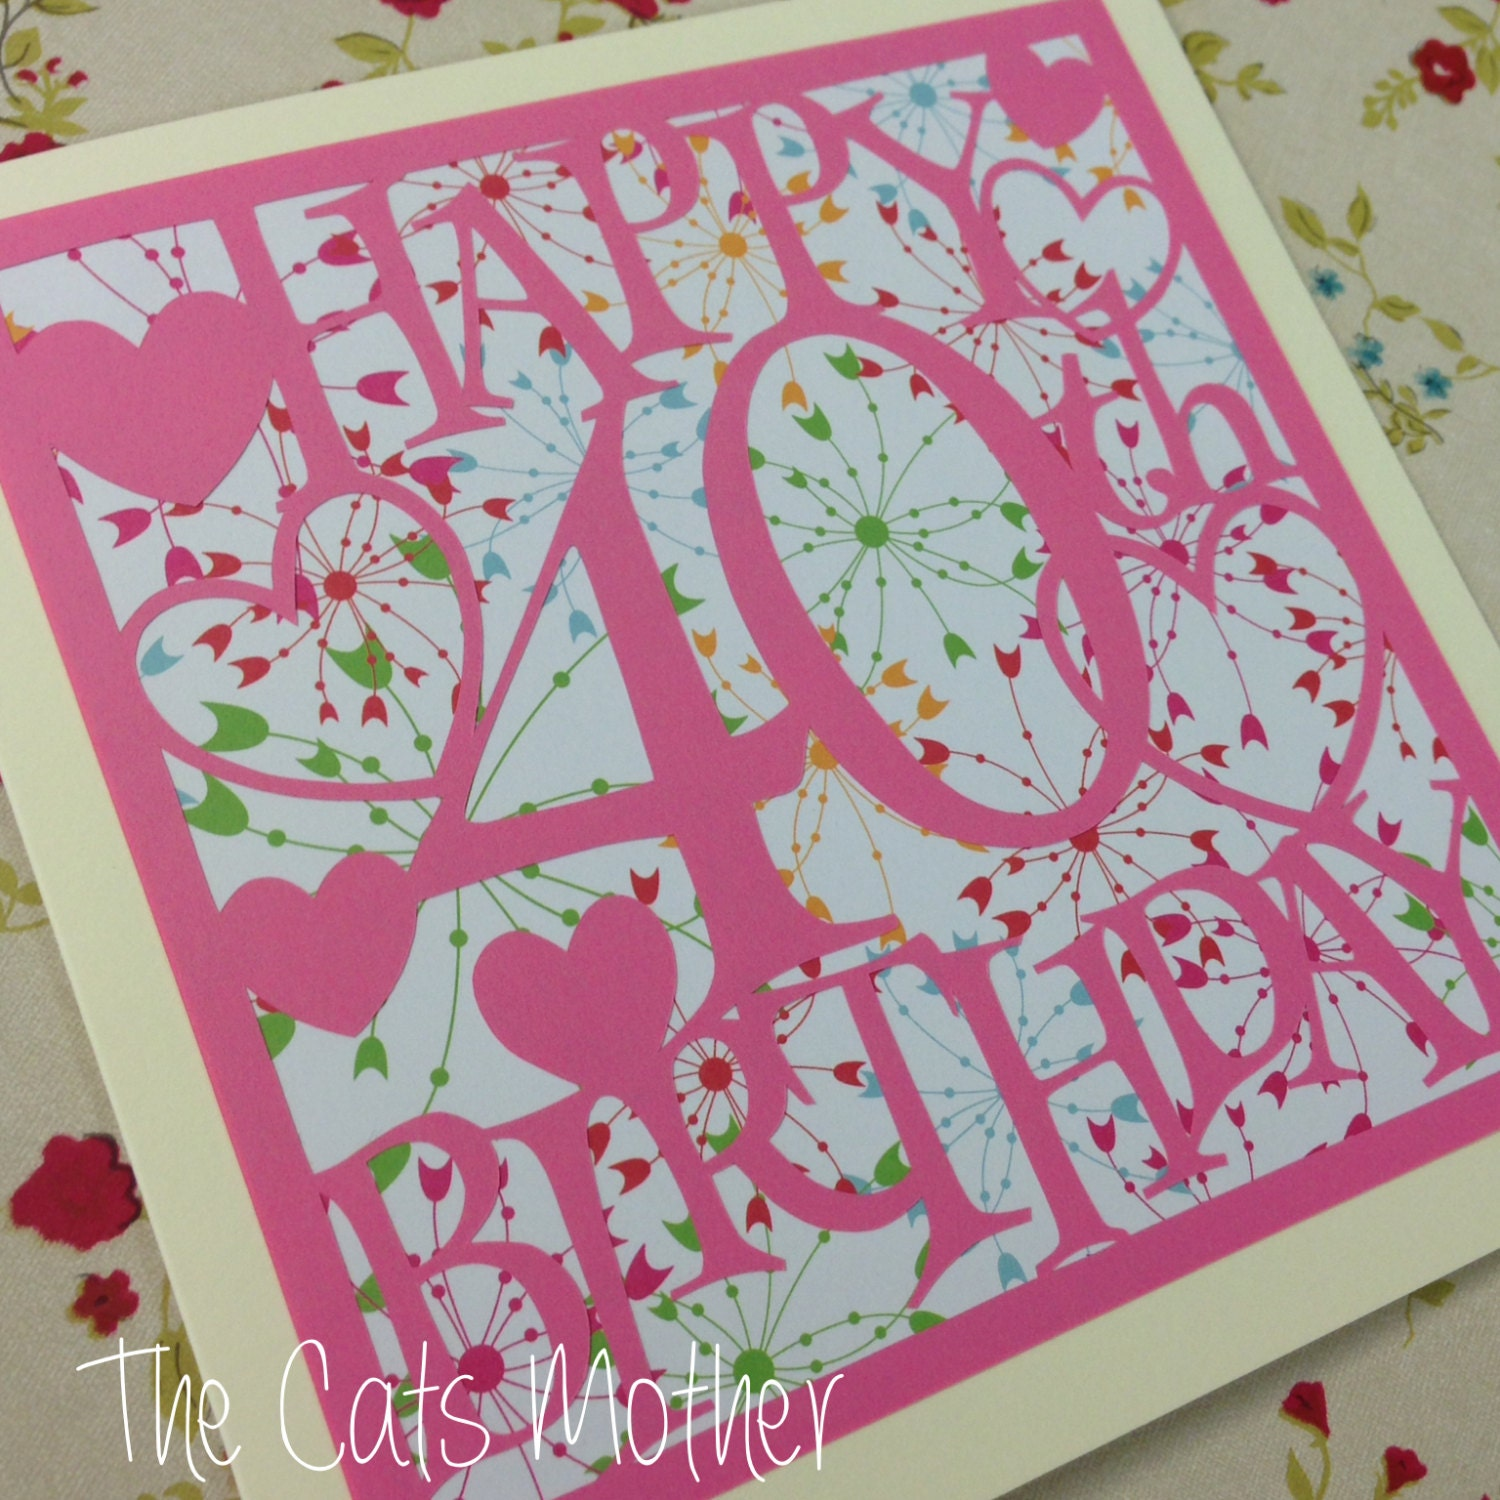 40th Birthday Hearts Paper Cutting Template Commercial Use Etsy